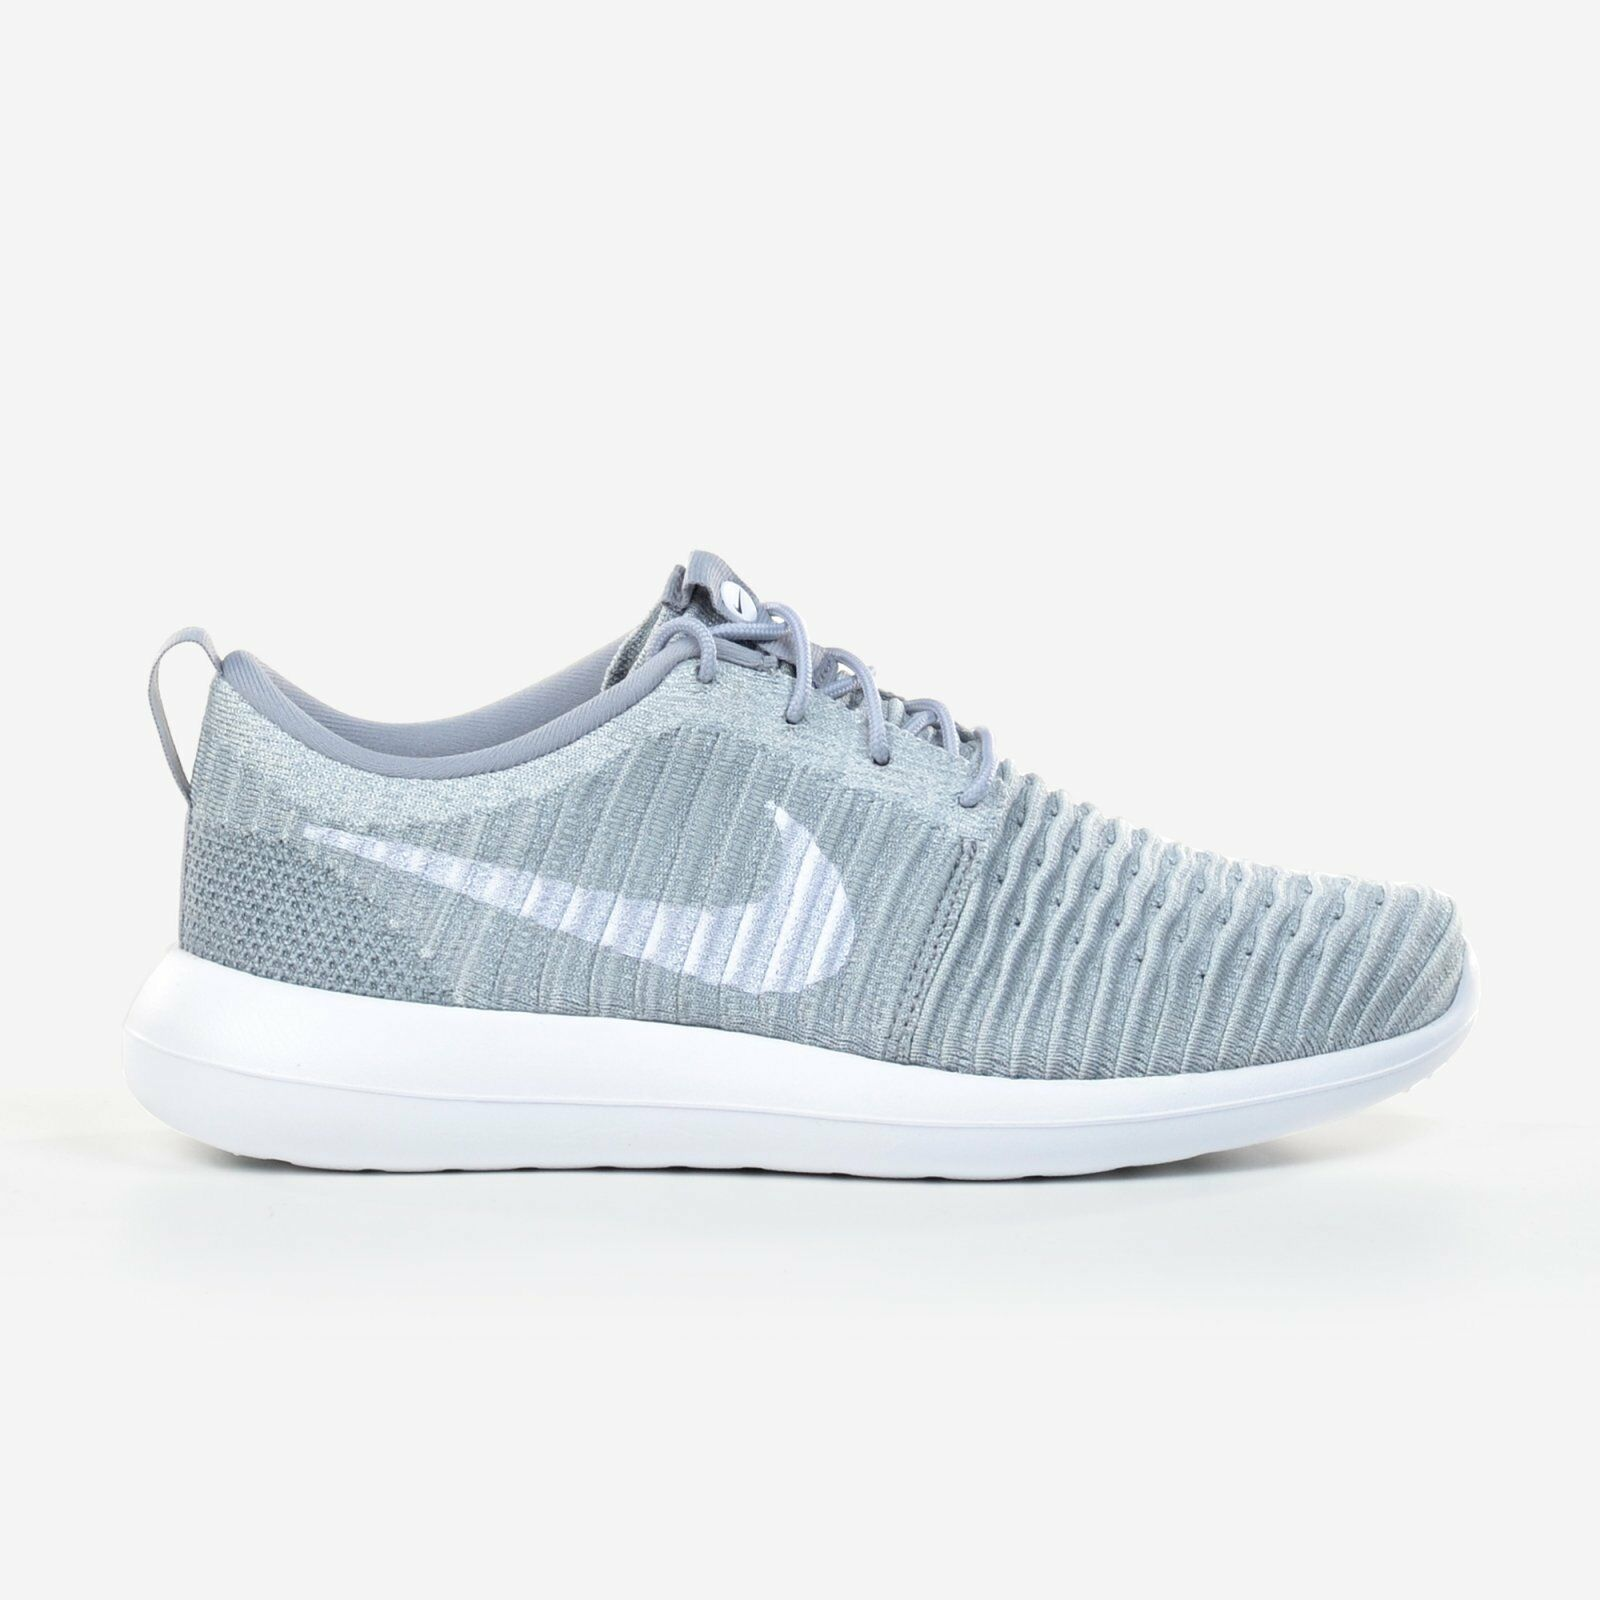 Nike Roshe Two 2 Flyknit Wolf Gris Training blanc  Hommes Running Training Gris Chaussure 844833-008 6a8b34